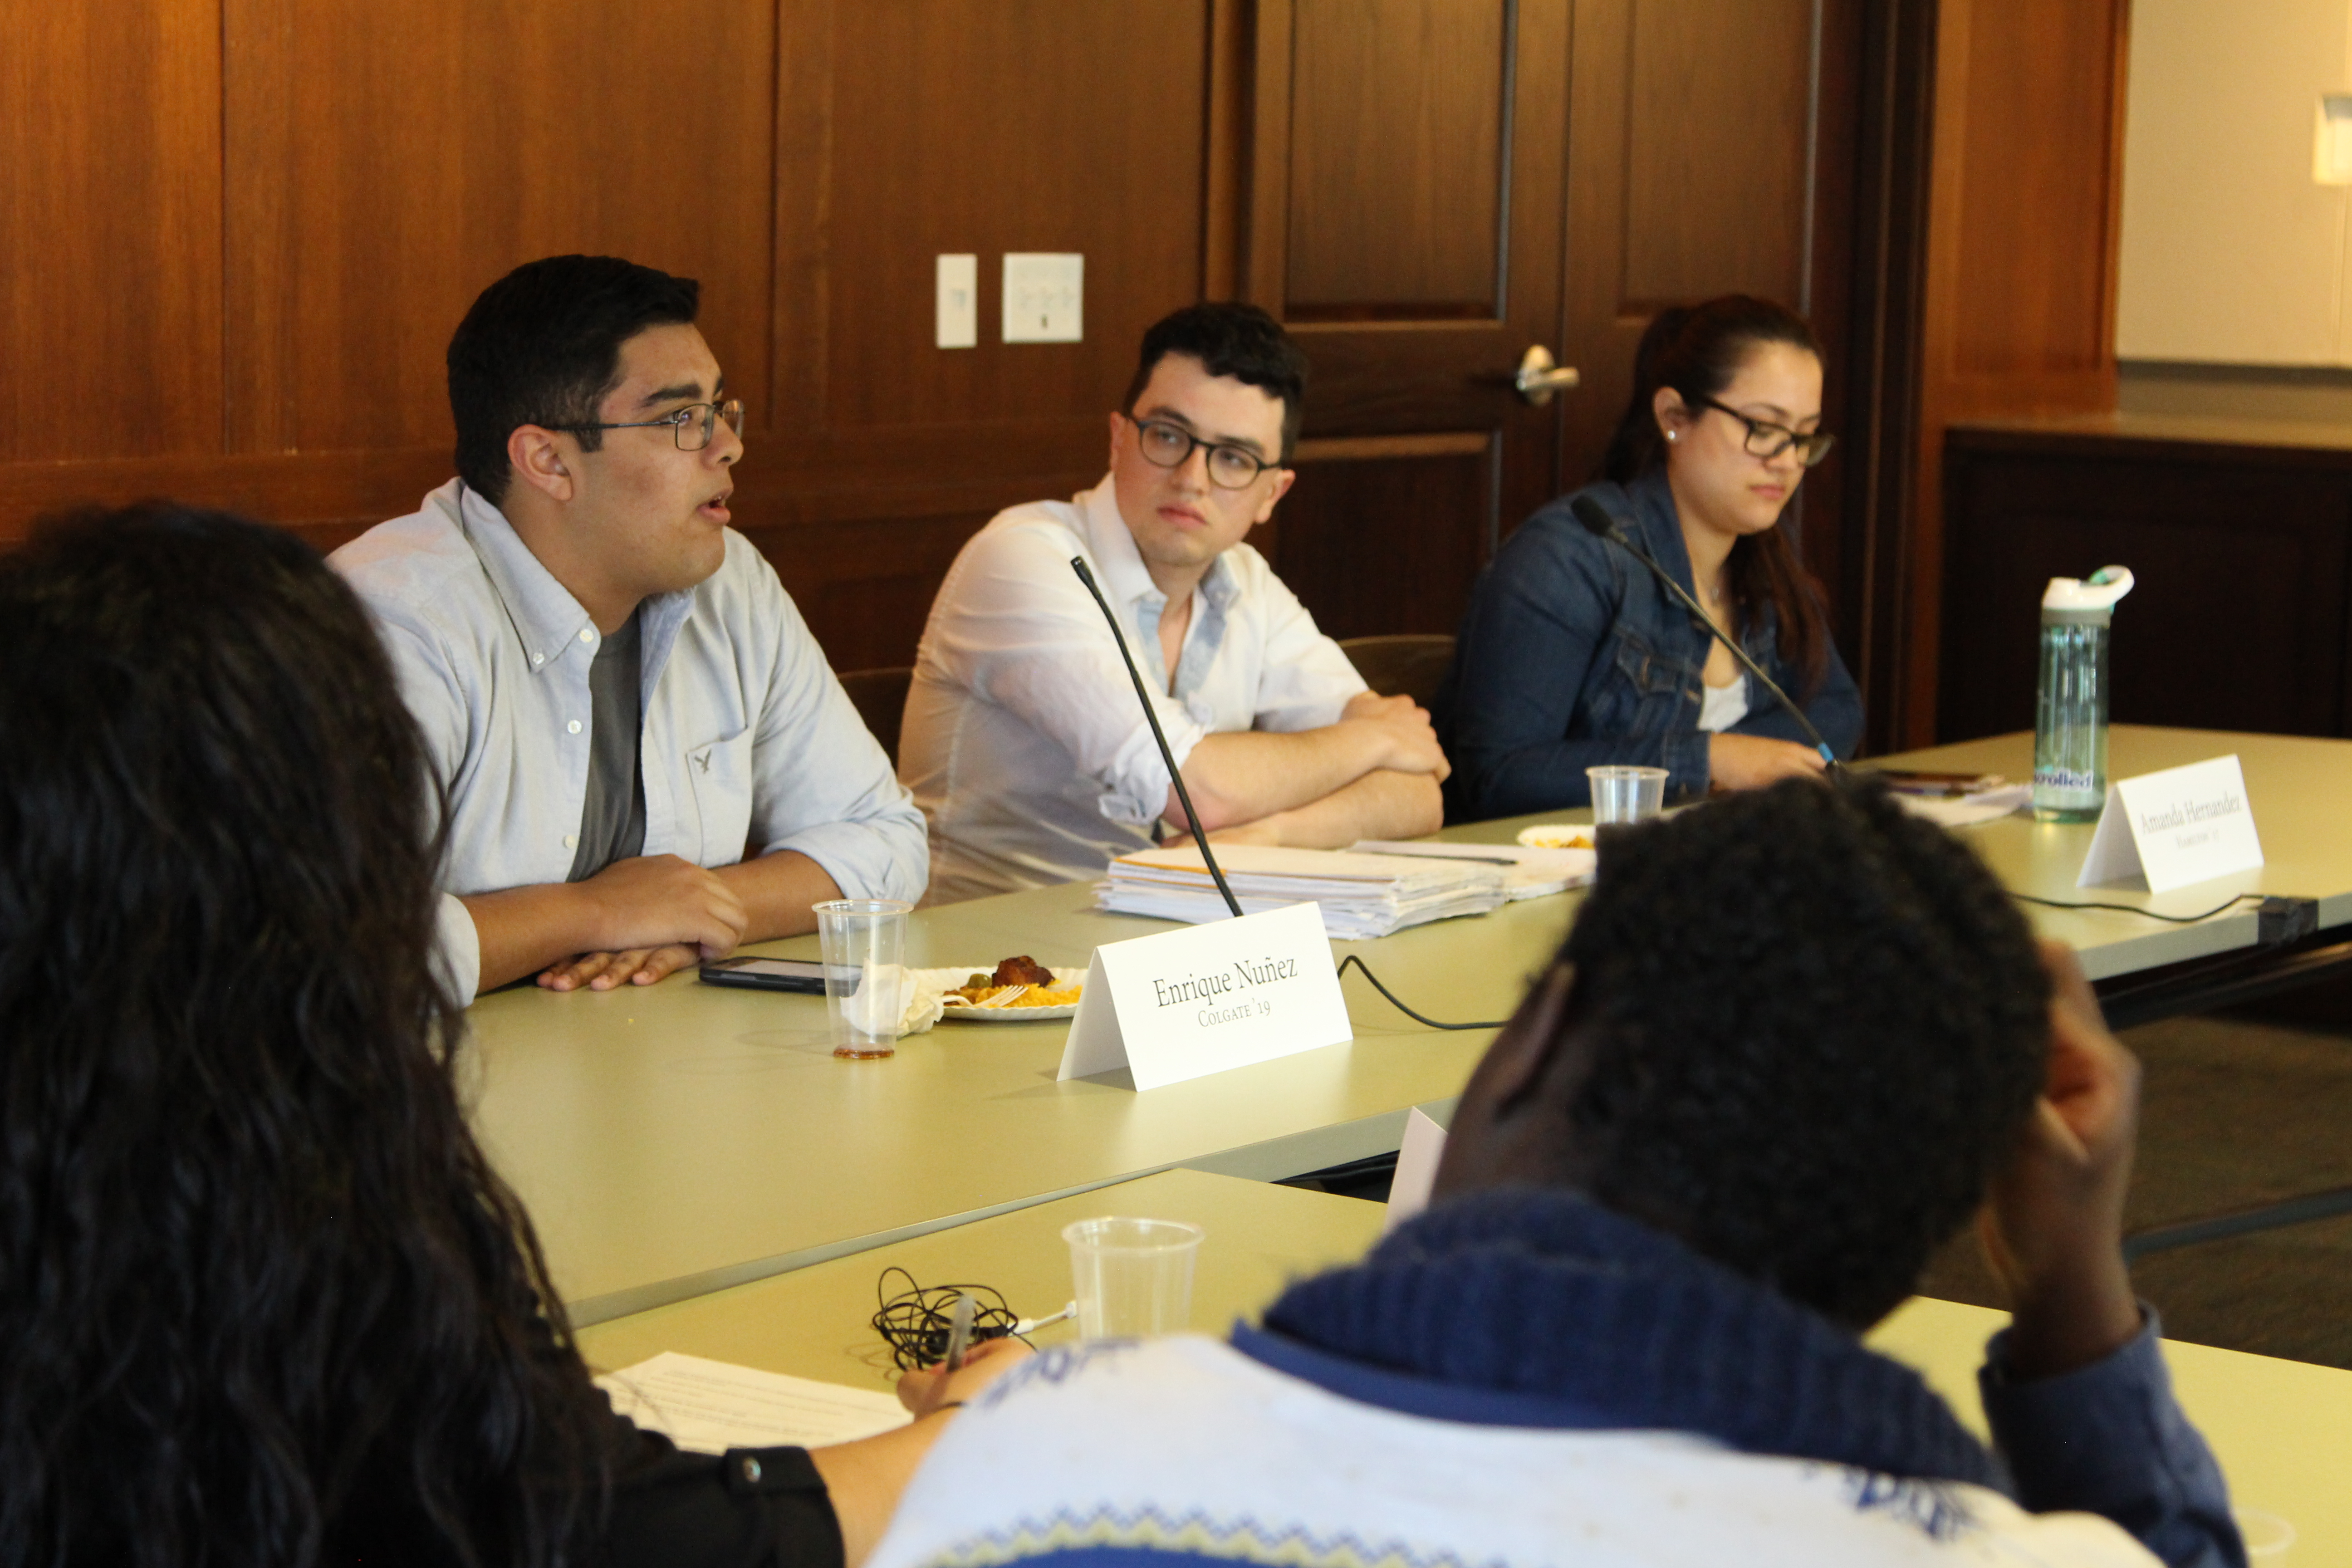 Panelist Enrique Nuñez '19 speaks during Friday's event; Photo by Molly Clark '19